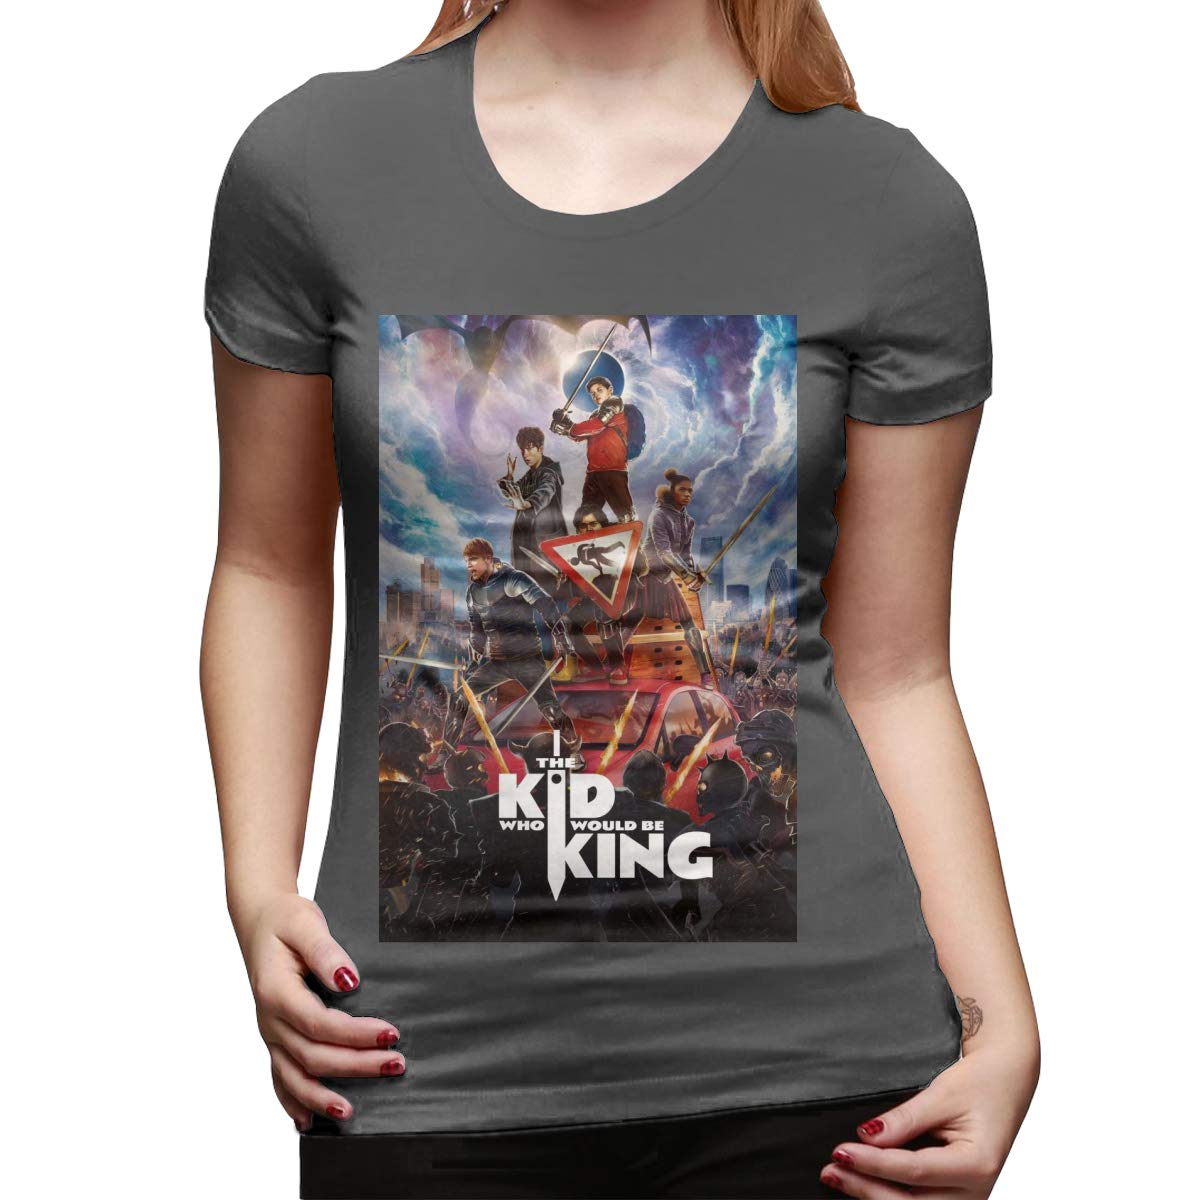 Summer The Kid Who Would Be King Classic Short Sleeves Shirts